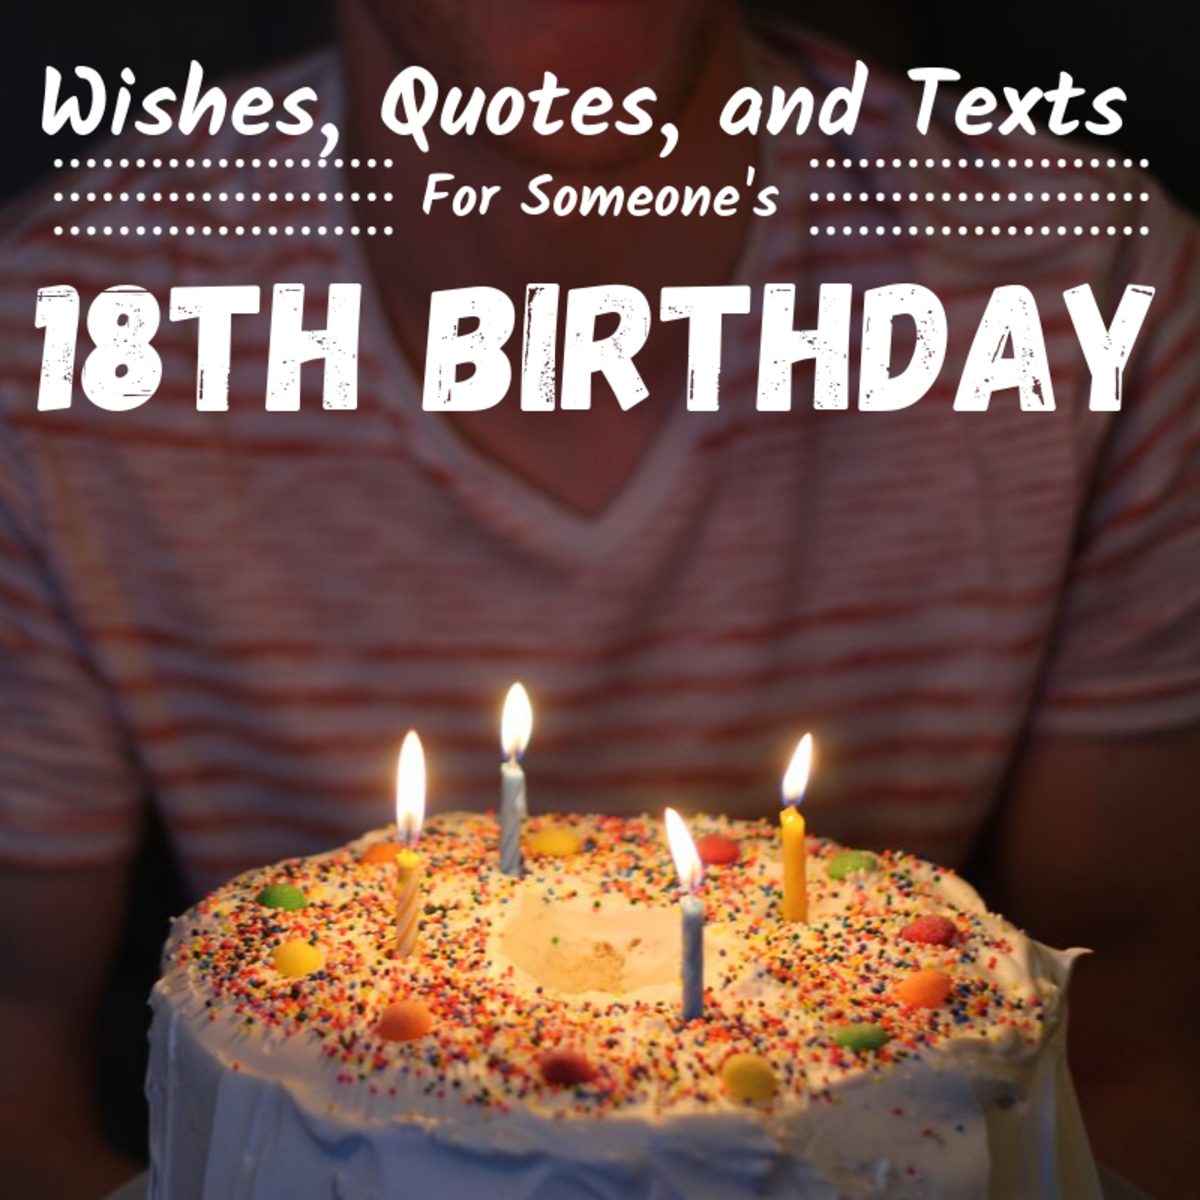 18th Birthday Wishes, Texts, and Quotes: 152 Example Messages